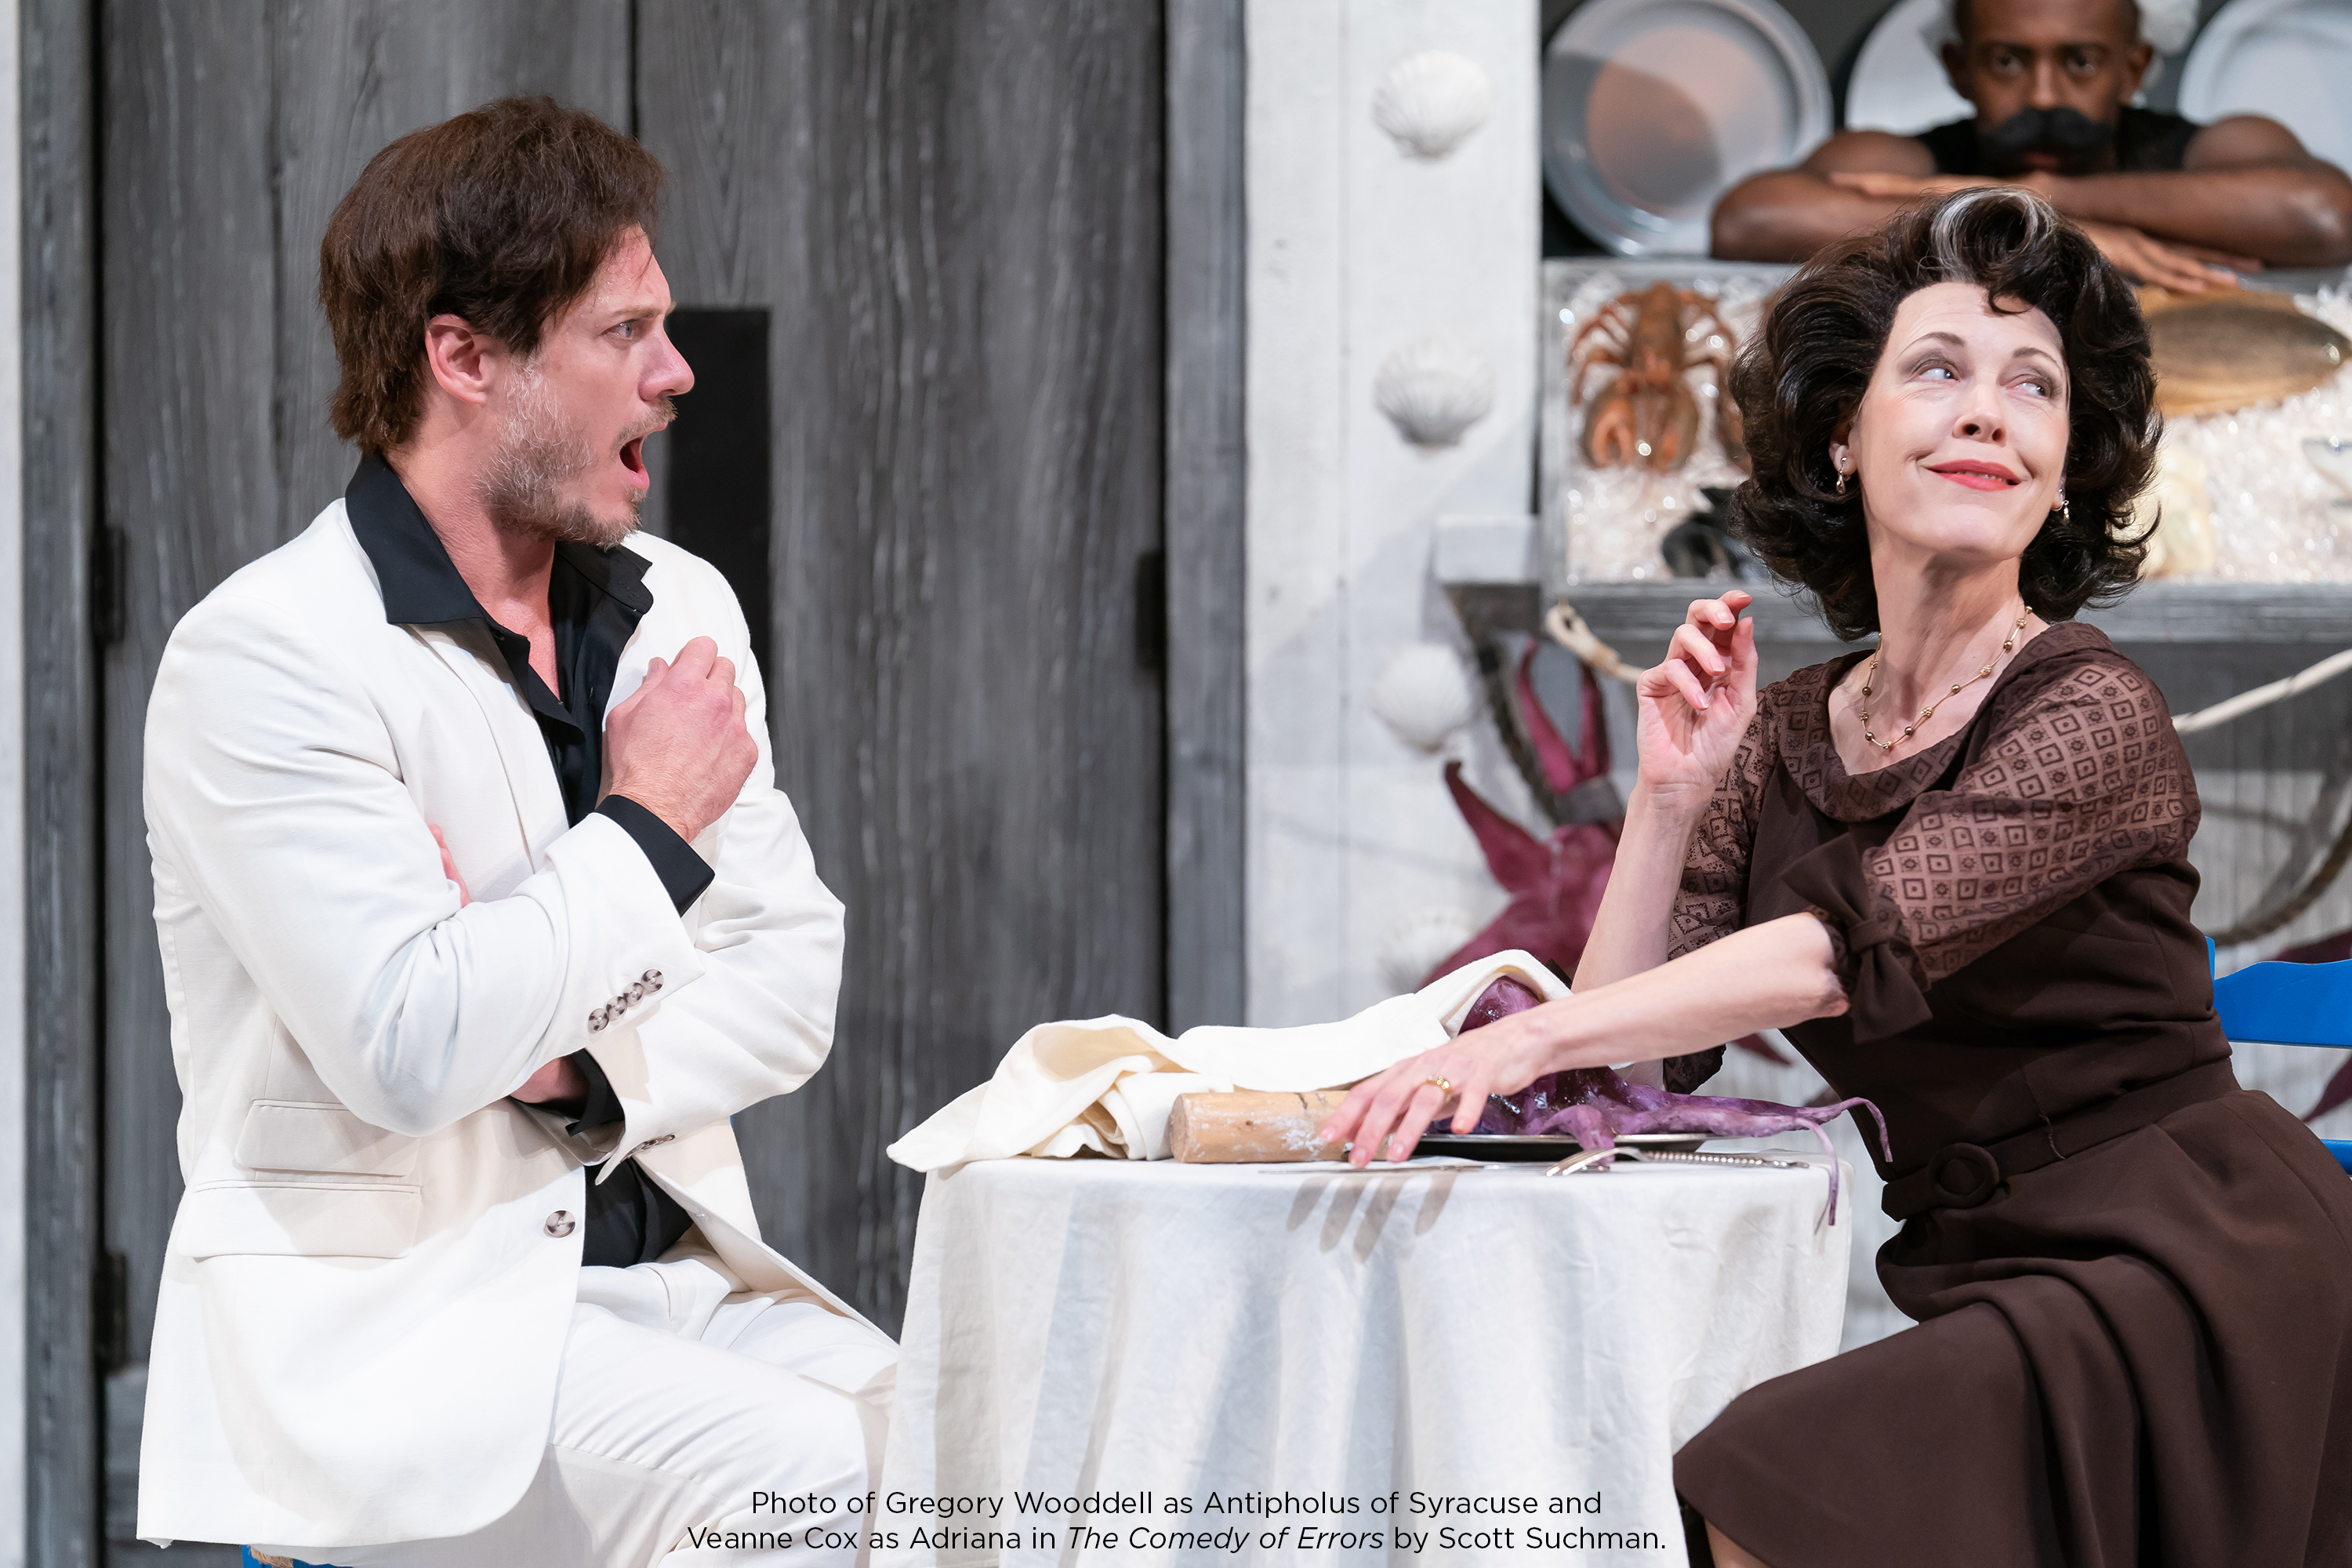 Photo of Gregory Wooddell as Antipholus of Syracuse and Veanne Cox as Adriana in The Comedy of Errors by Scott Suchman.